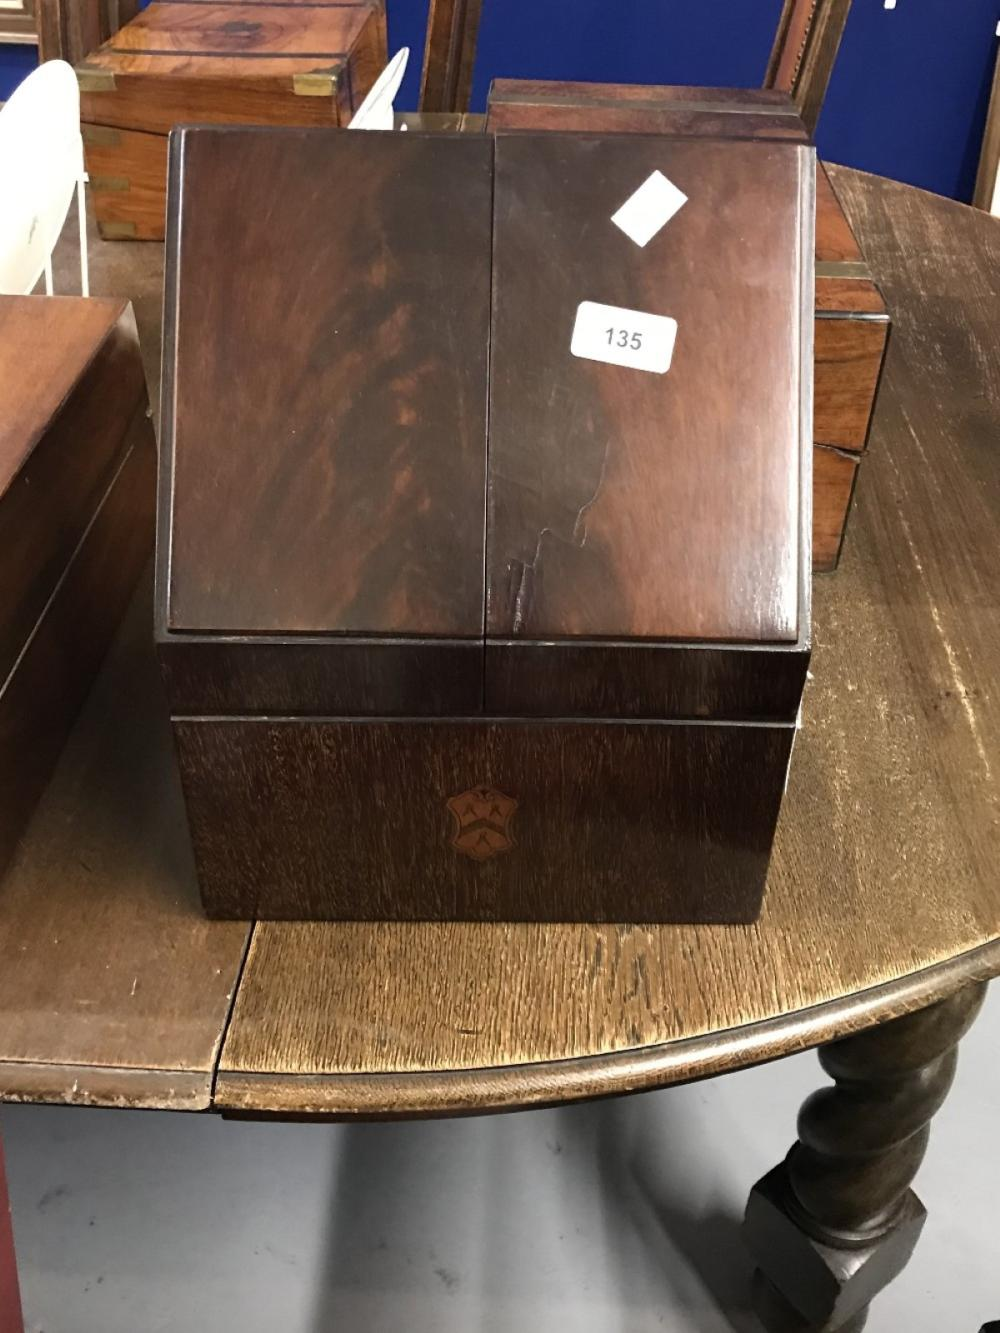 Boxes: 20th cent. Mahogany stationery box with Armorial to the front.